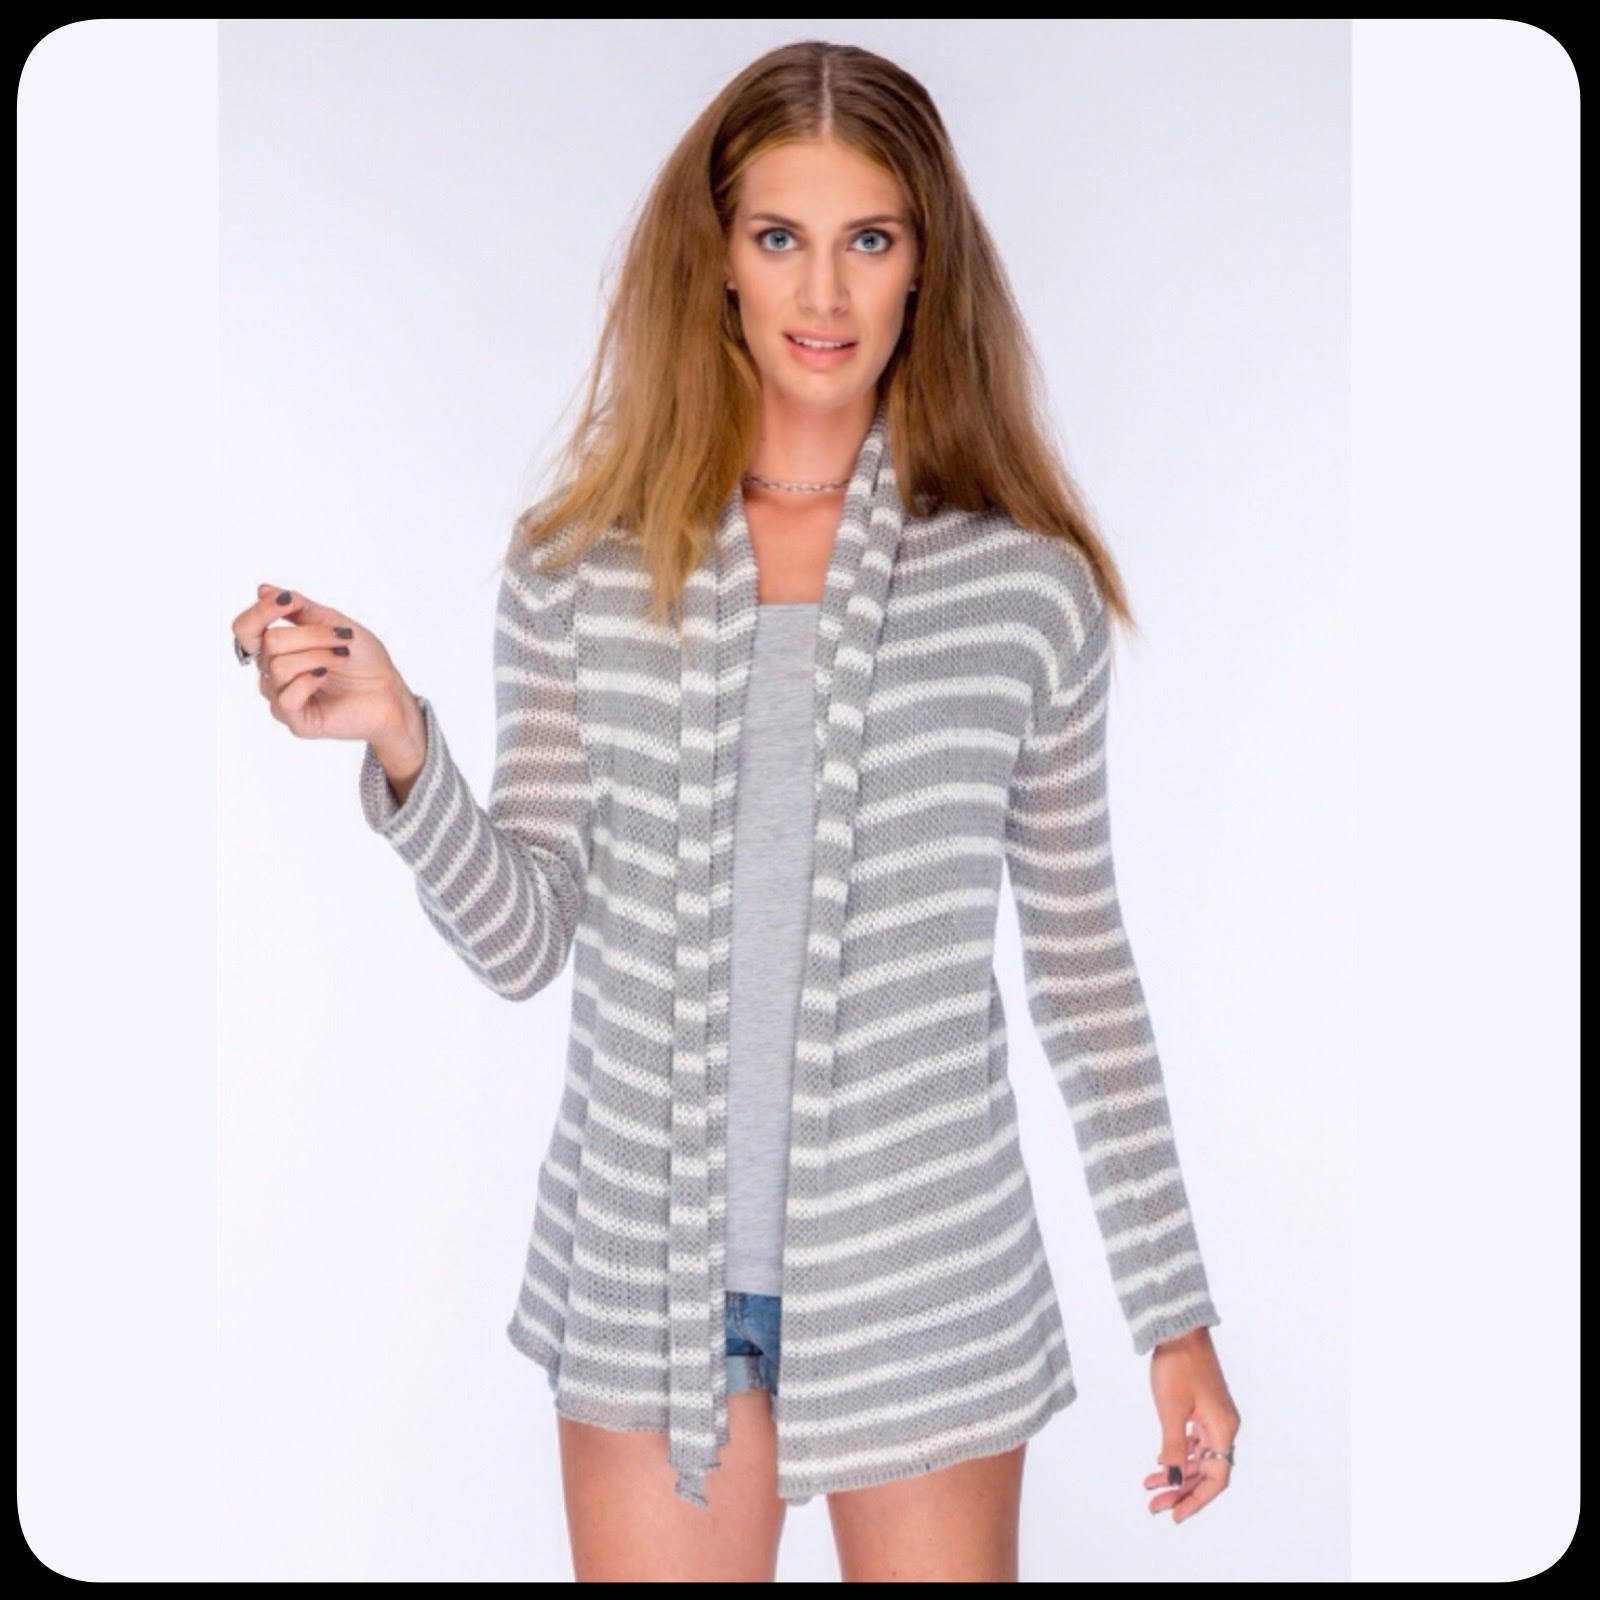 https://squareup.com/market/wholly-tara/wooden-ships-cotton-striped-wrap-cardigan